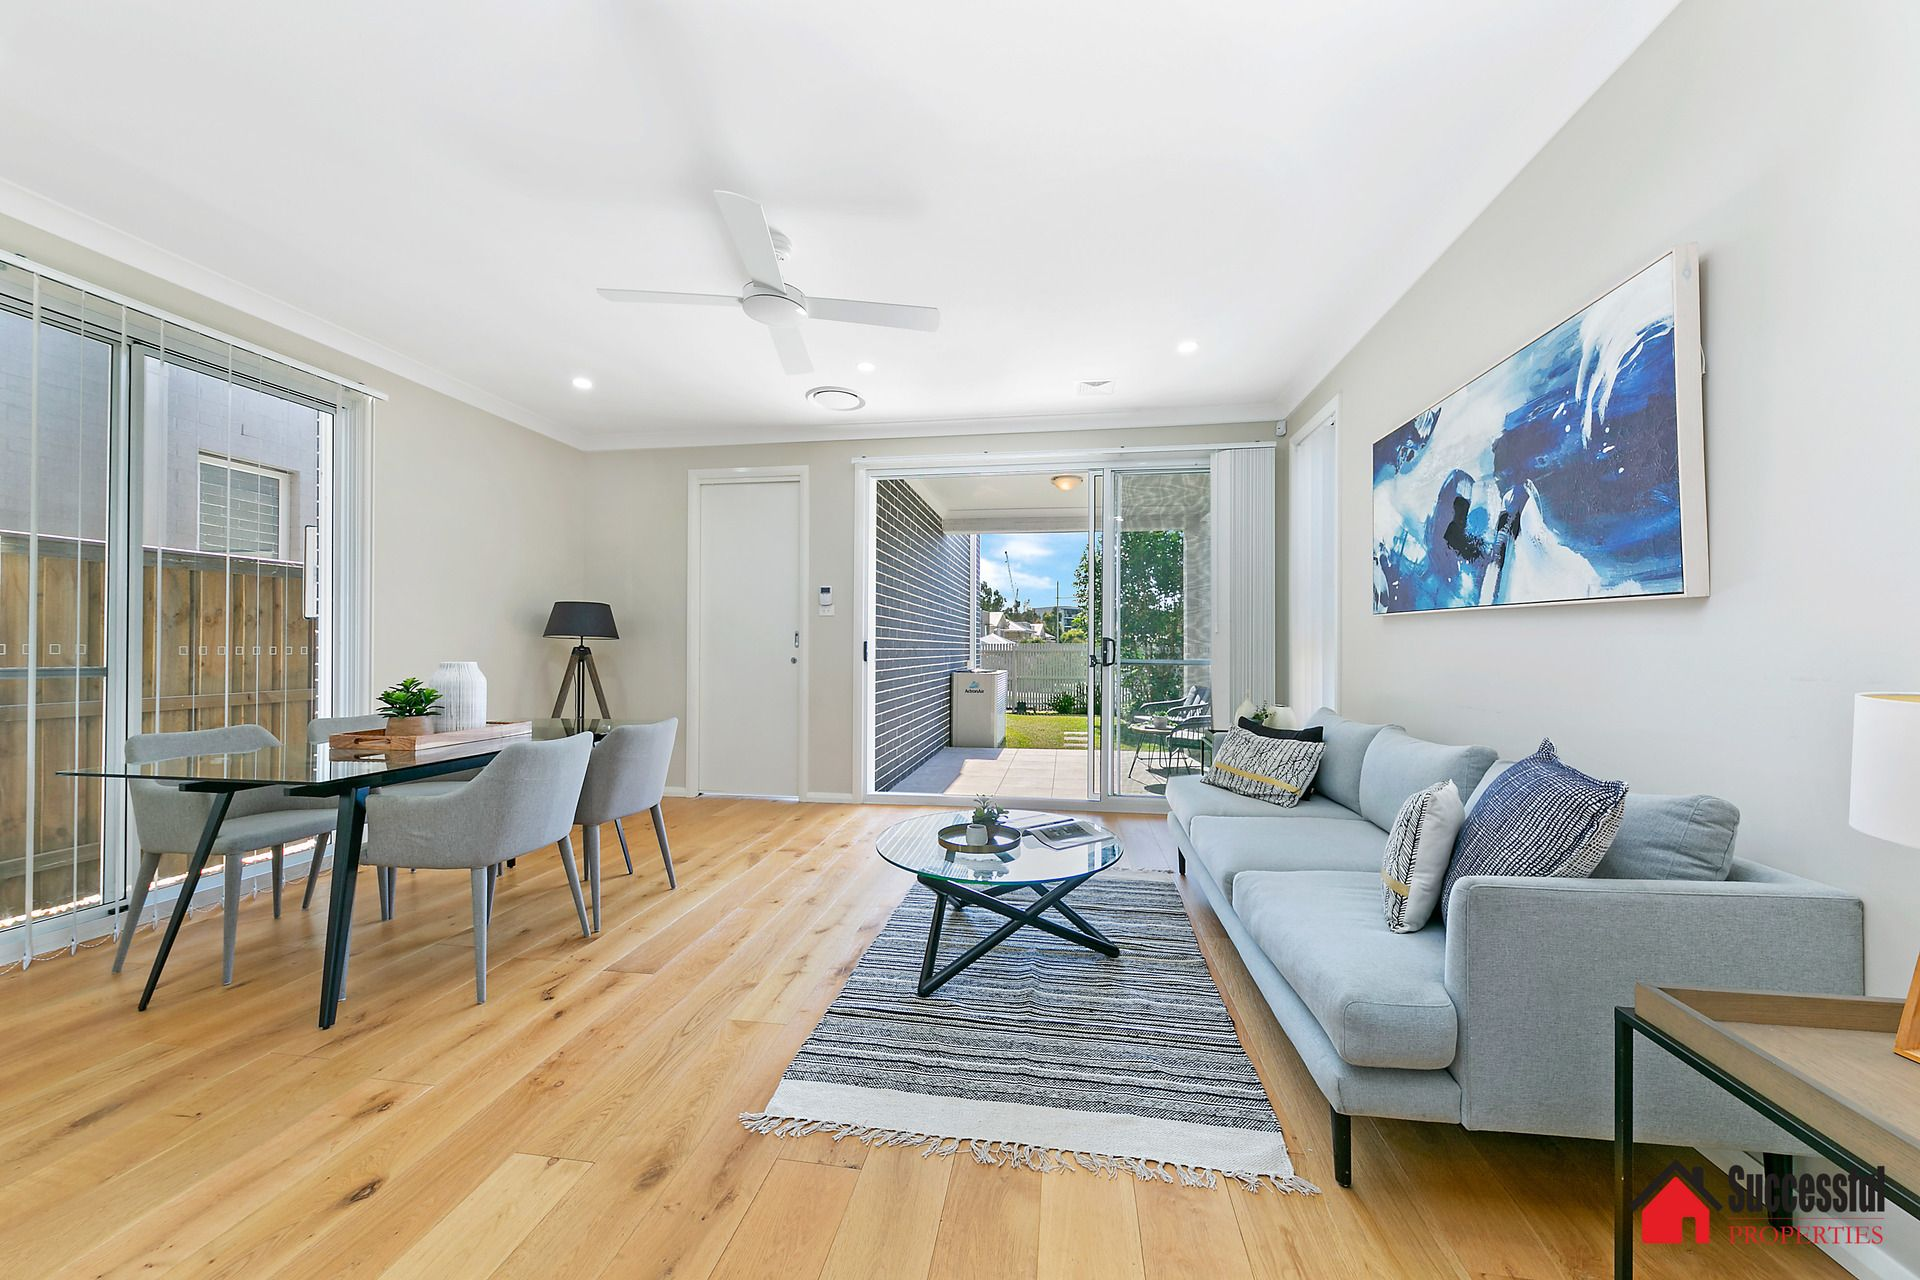 Flooring Rouse Hill: How To Choose Flooring For Your Home